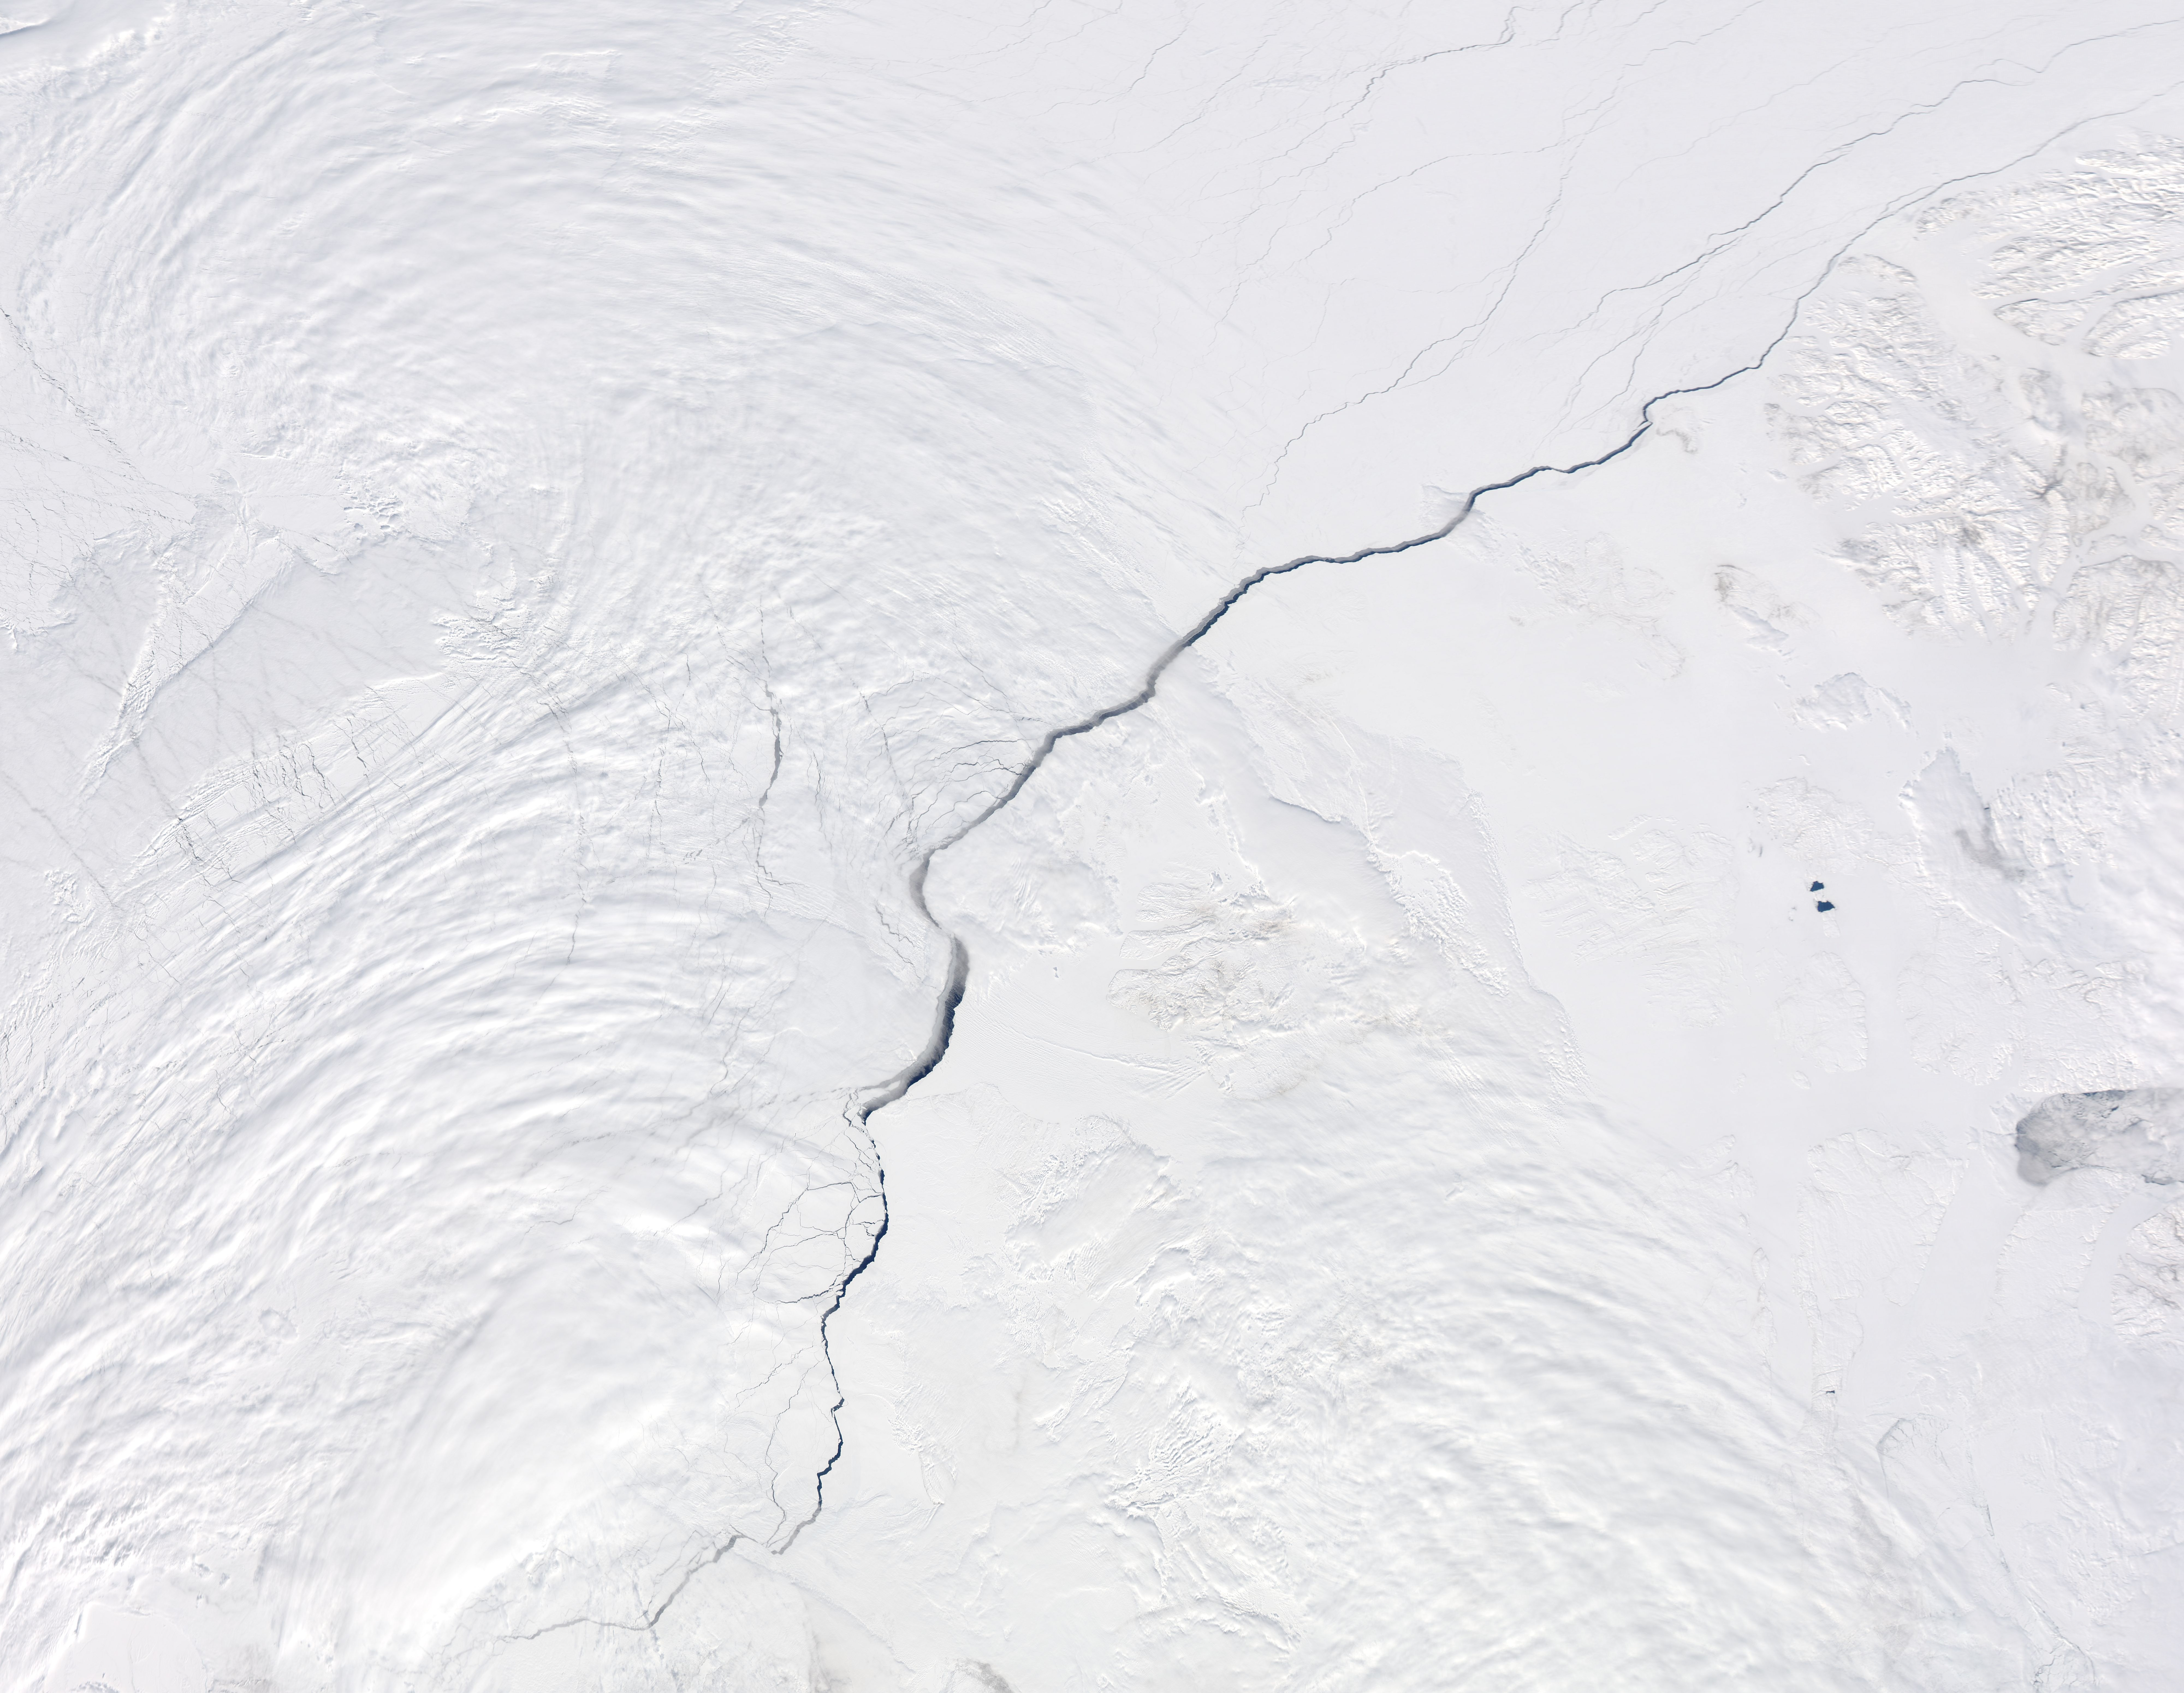 The Moderate Resolution Imaging Spectroradiometer (MODIS) aboard NASA's Aqua satellite captured this true-color image of a large open water lead traversing the ice of the northern Arctic Ocean on May 13, 2013. Located north of Canada, the long, wide crack extends hundreds of kilometers across the ice to end north of the Arctic Circle. (NASA/GSFC/Jeff Schmaltz/MODIS Land Rapid Response Team)